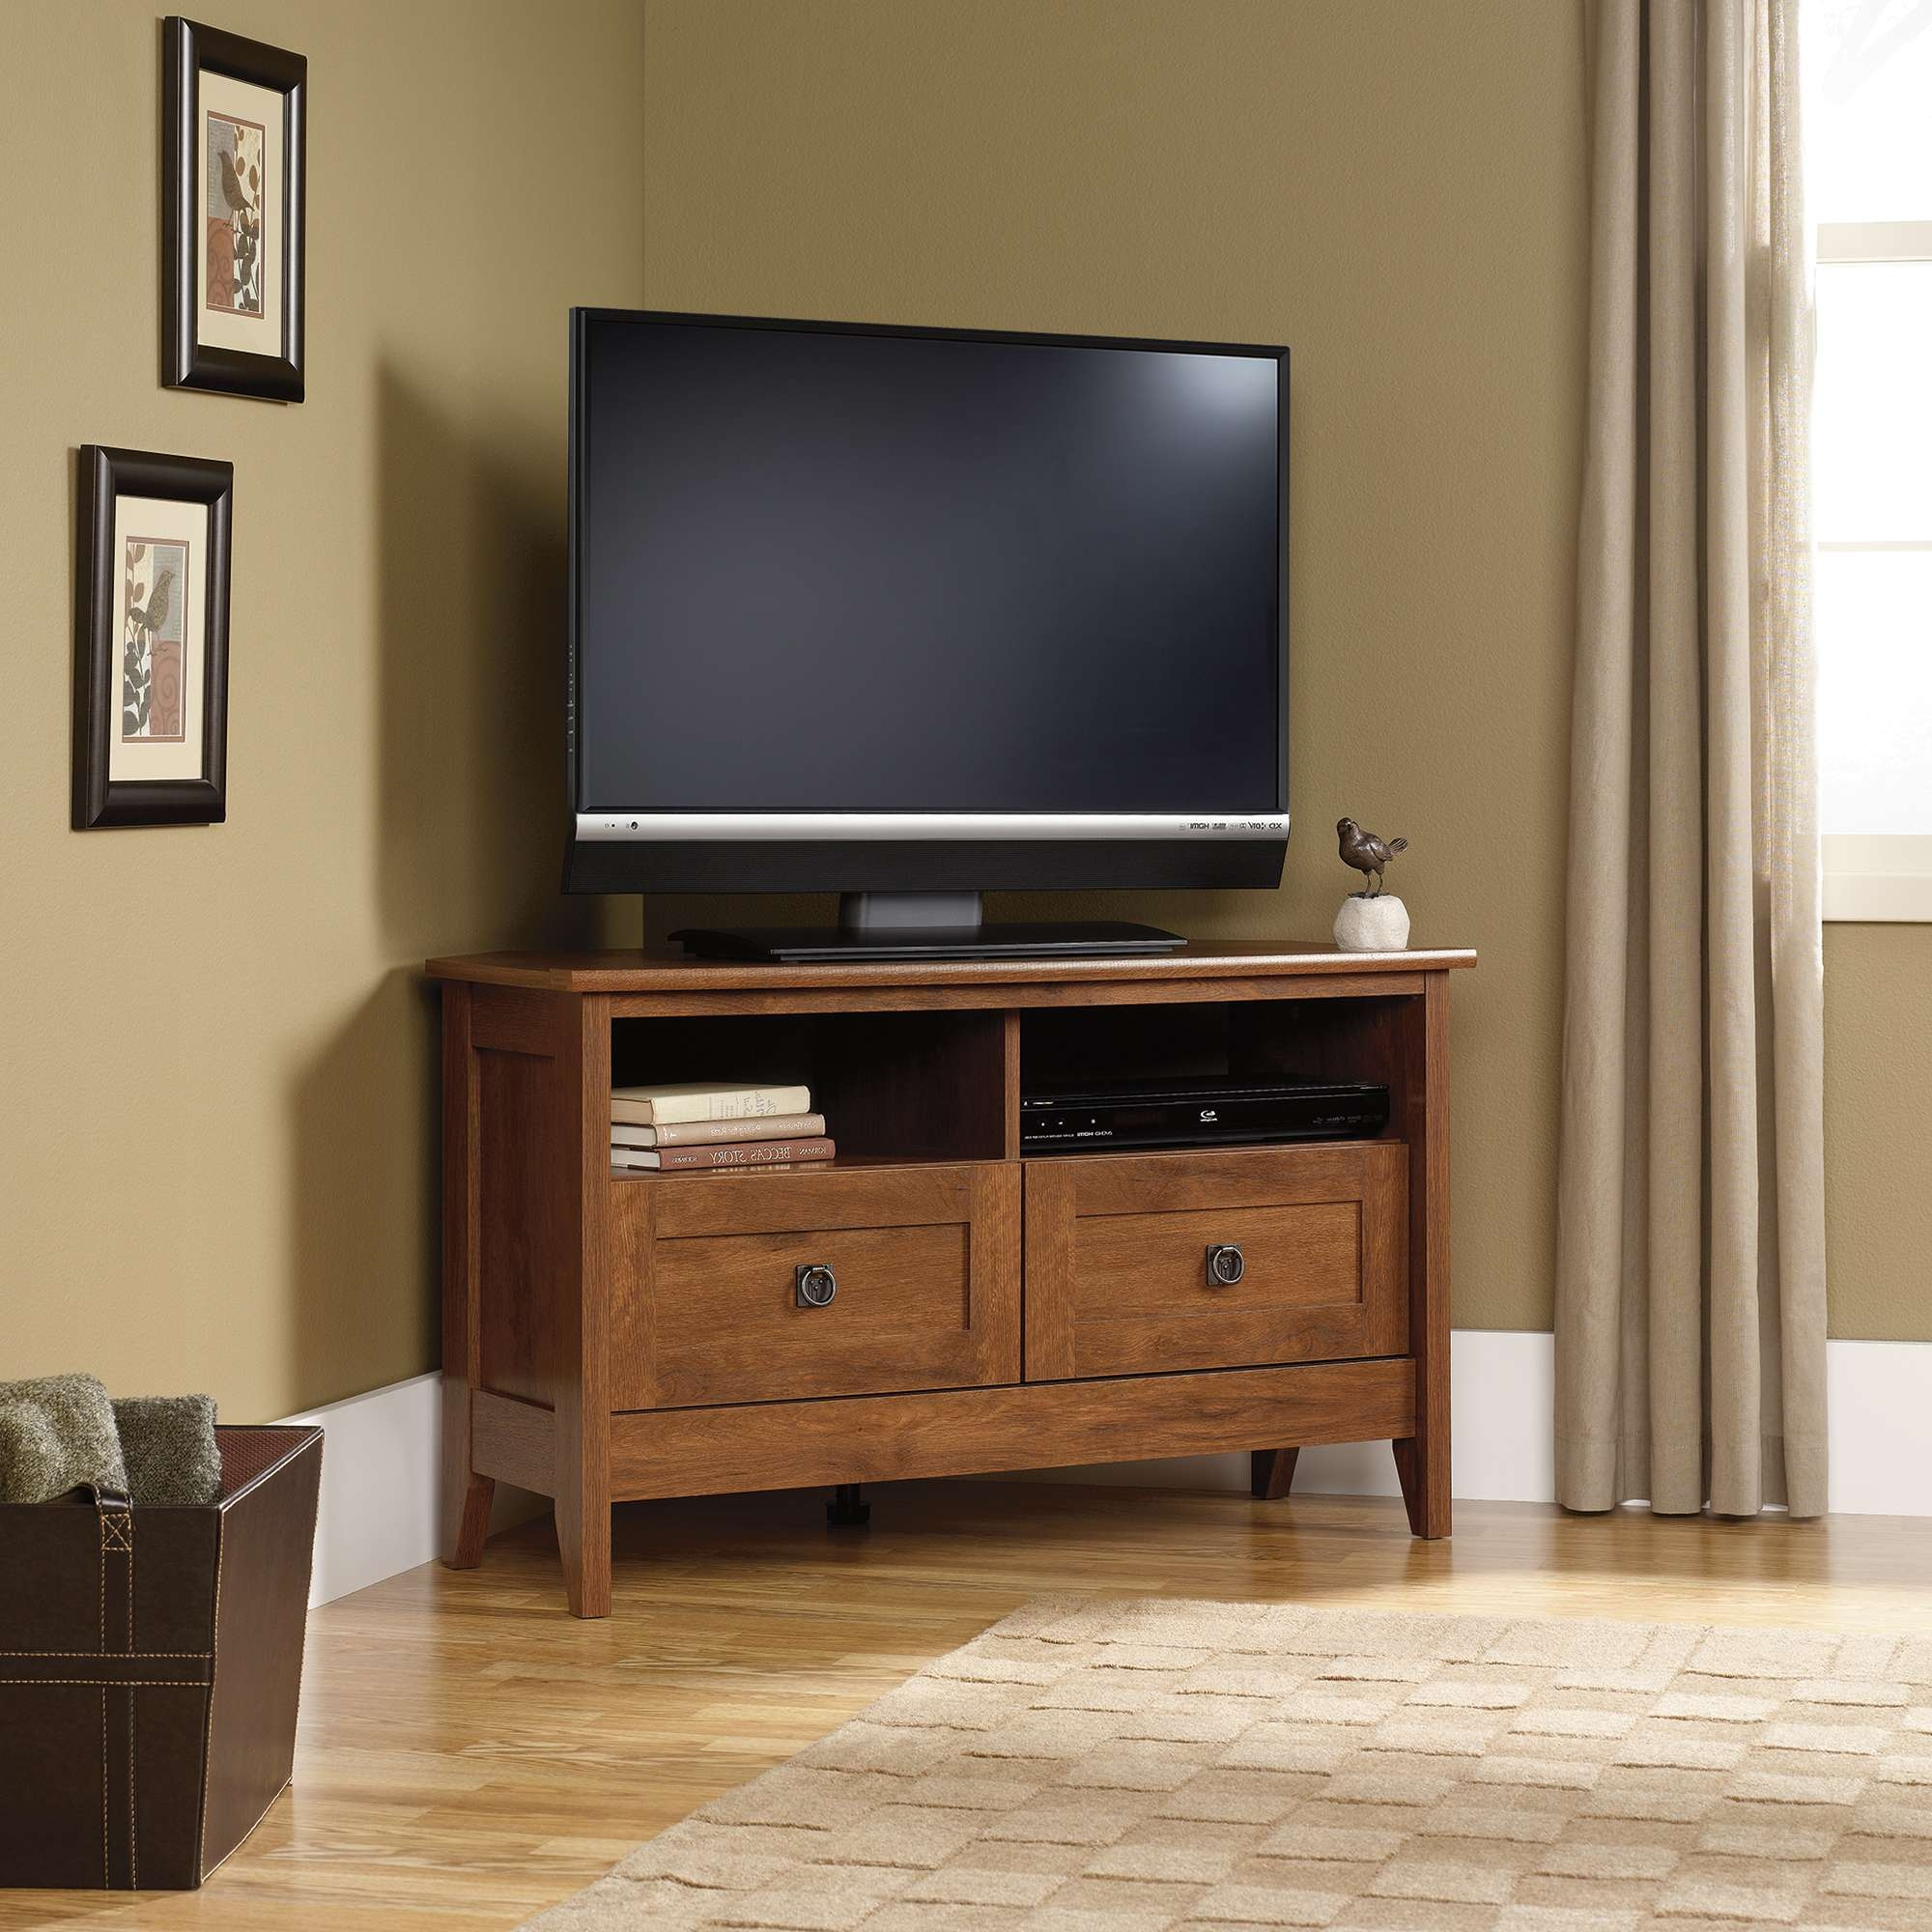 Sauder Select | Corner Tv Stand | 410627 | Sauder With Tv Stands For Corners (View 18 of 20)